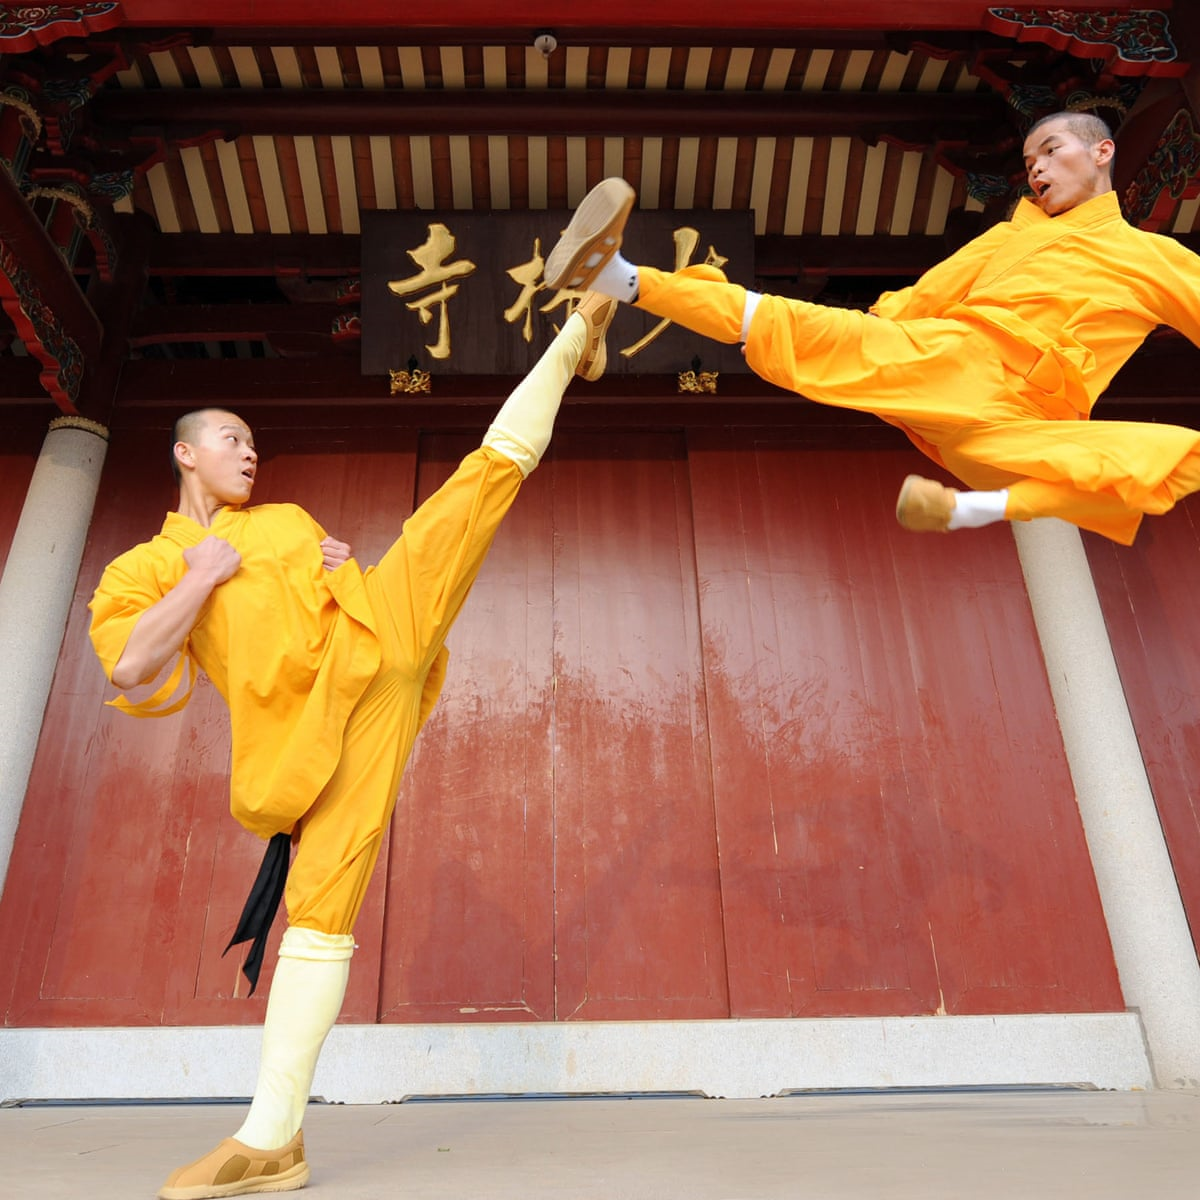 Kung Fu, its history and fighting style